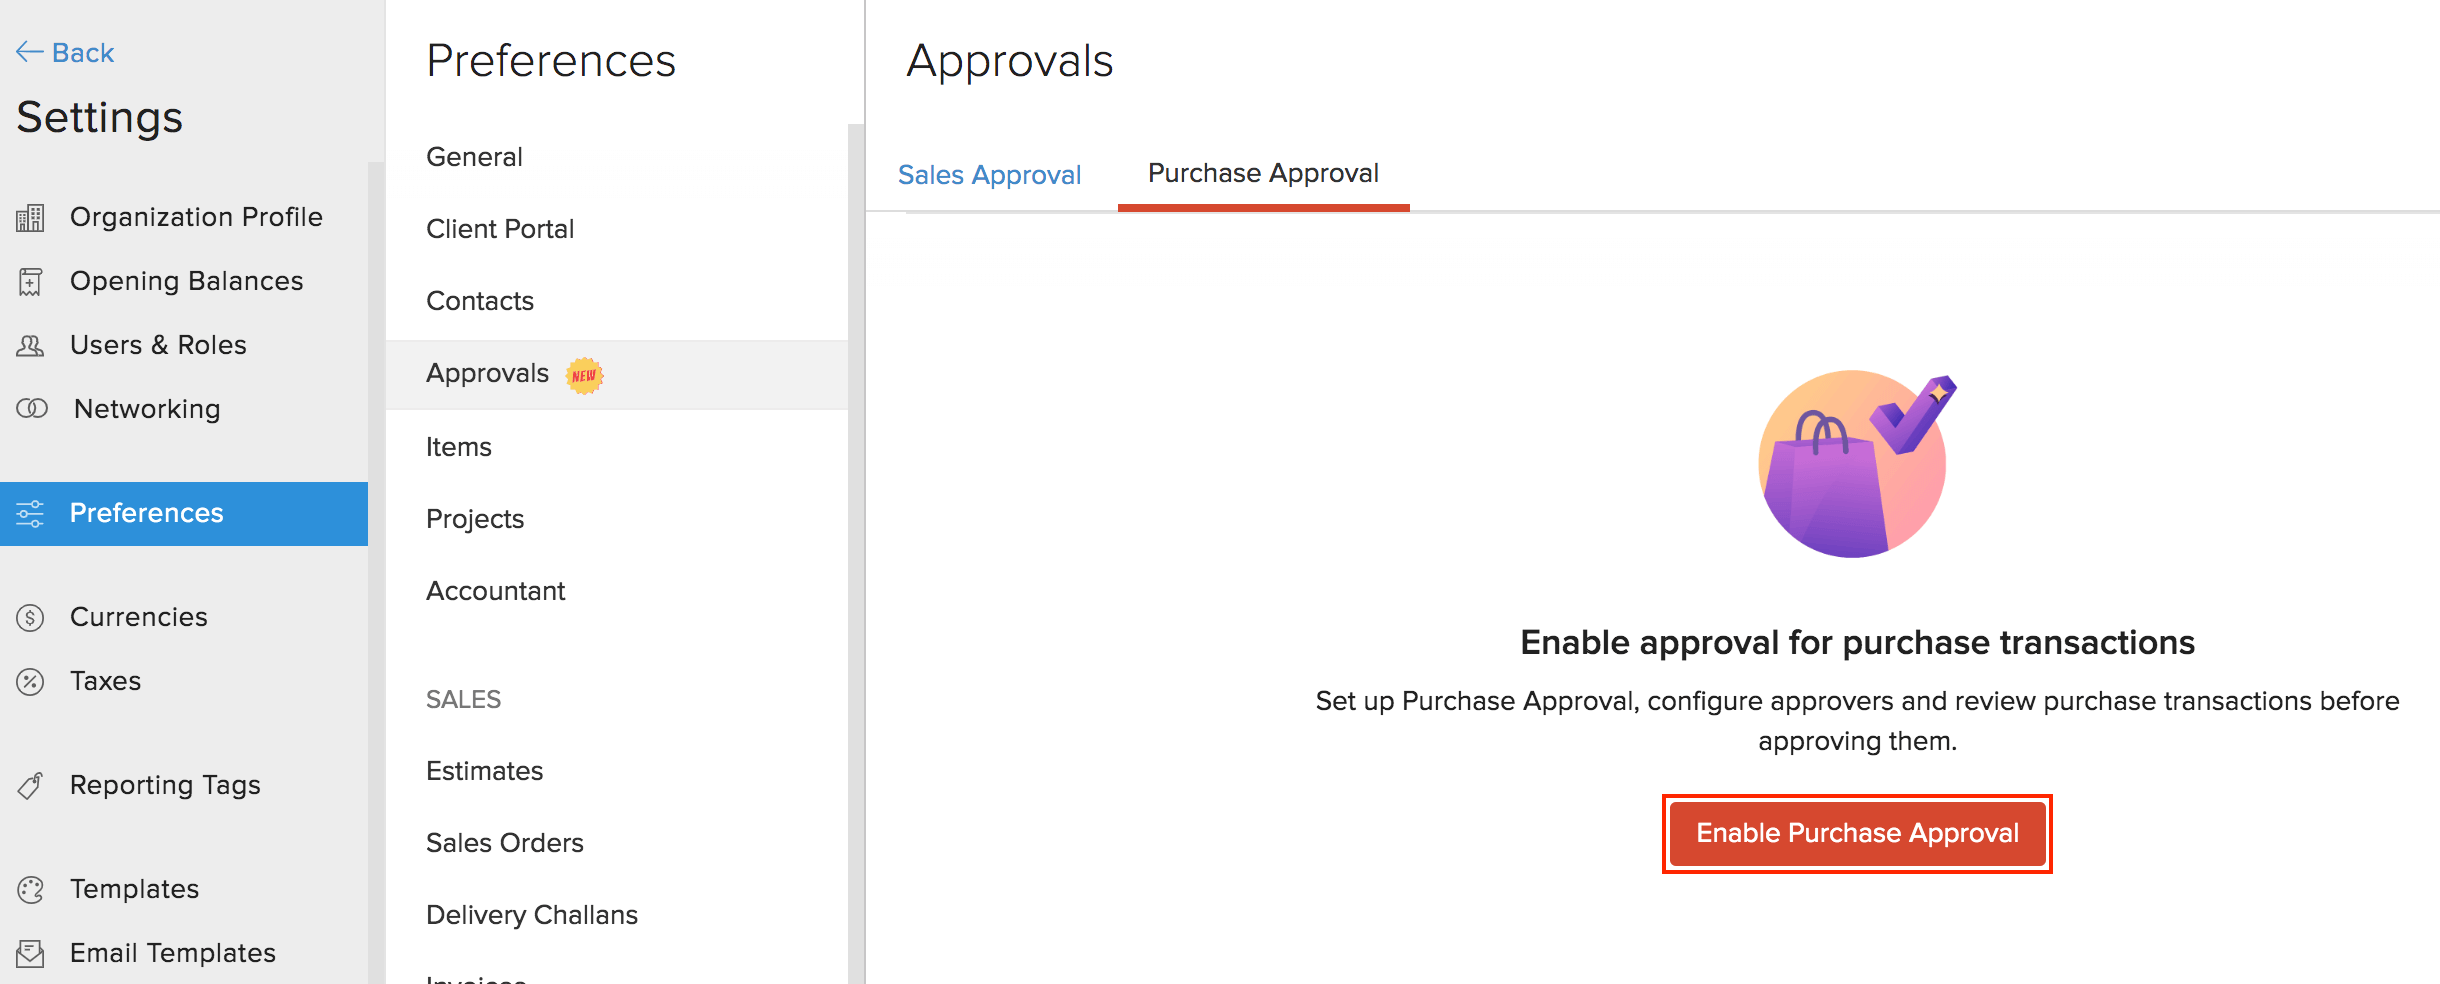 enable-purchase-approval